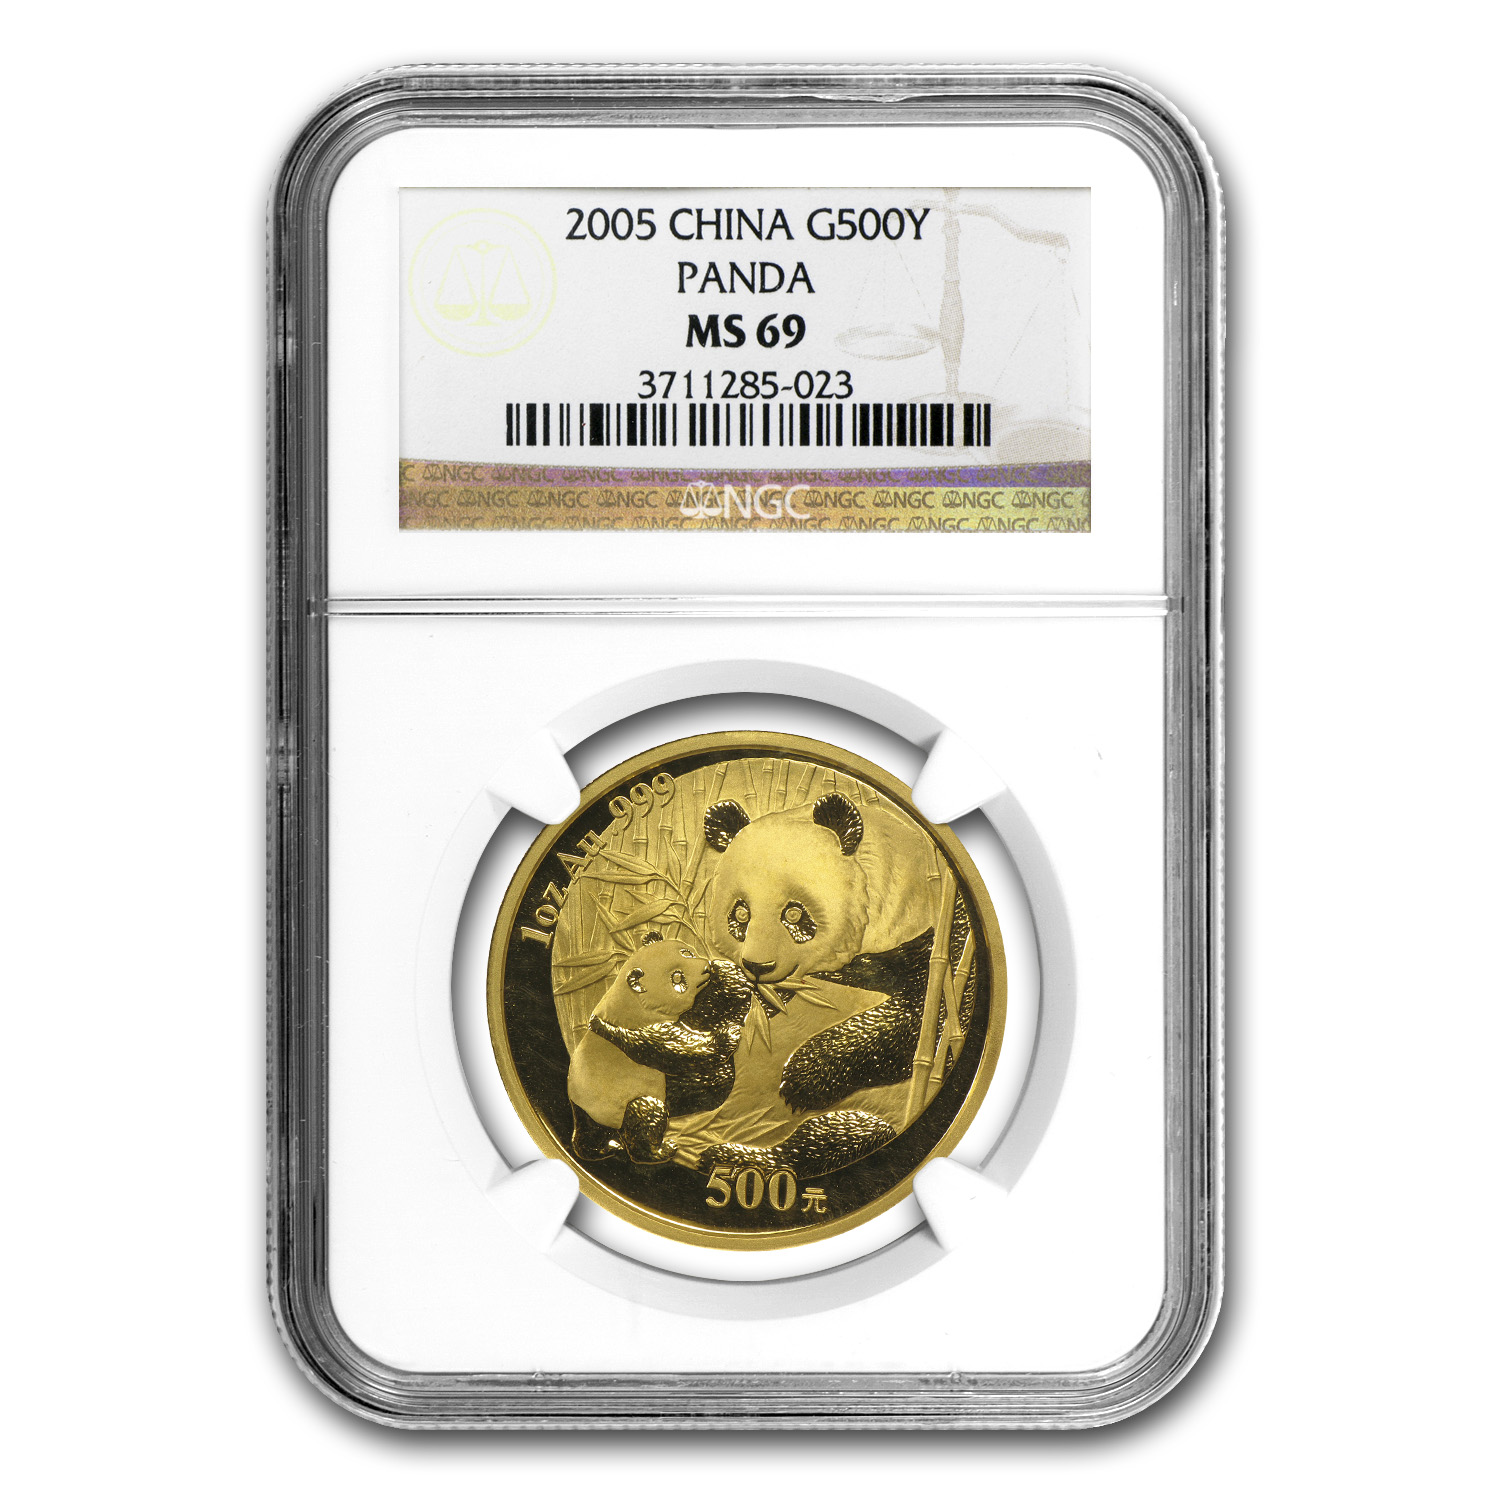 2005 1 oz Gold Chinese Panda MS-69 NGC